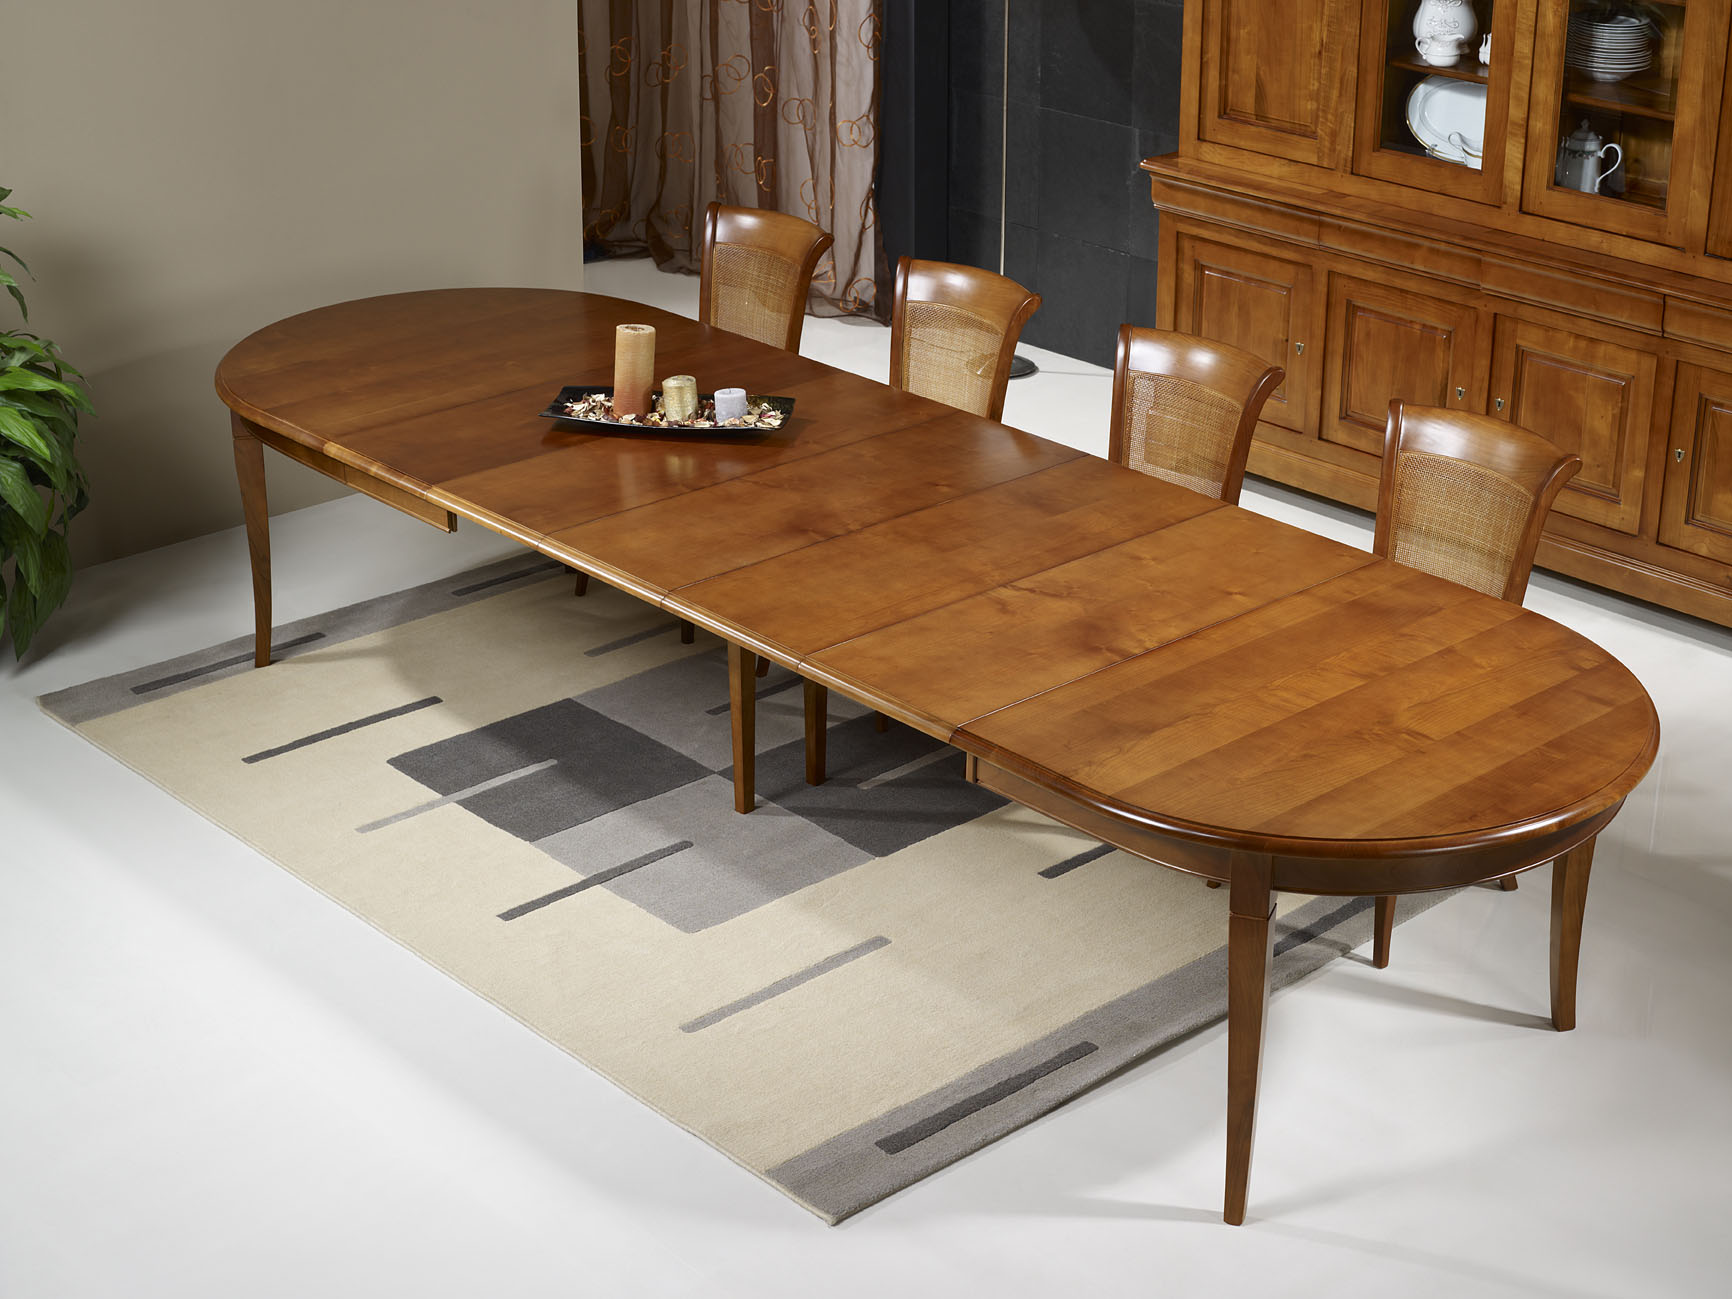 Table ovale 180x120 en merisier massif de style louis for Petite table ovale de cuisine